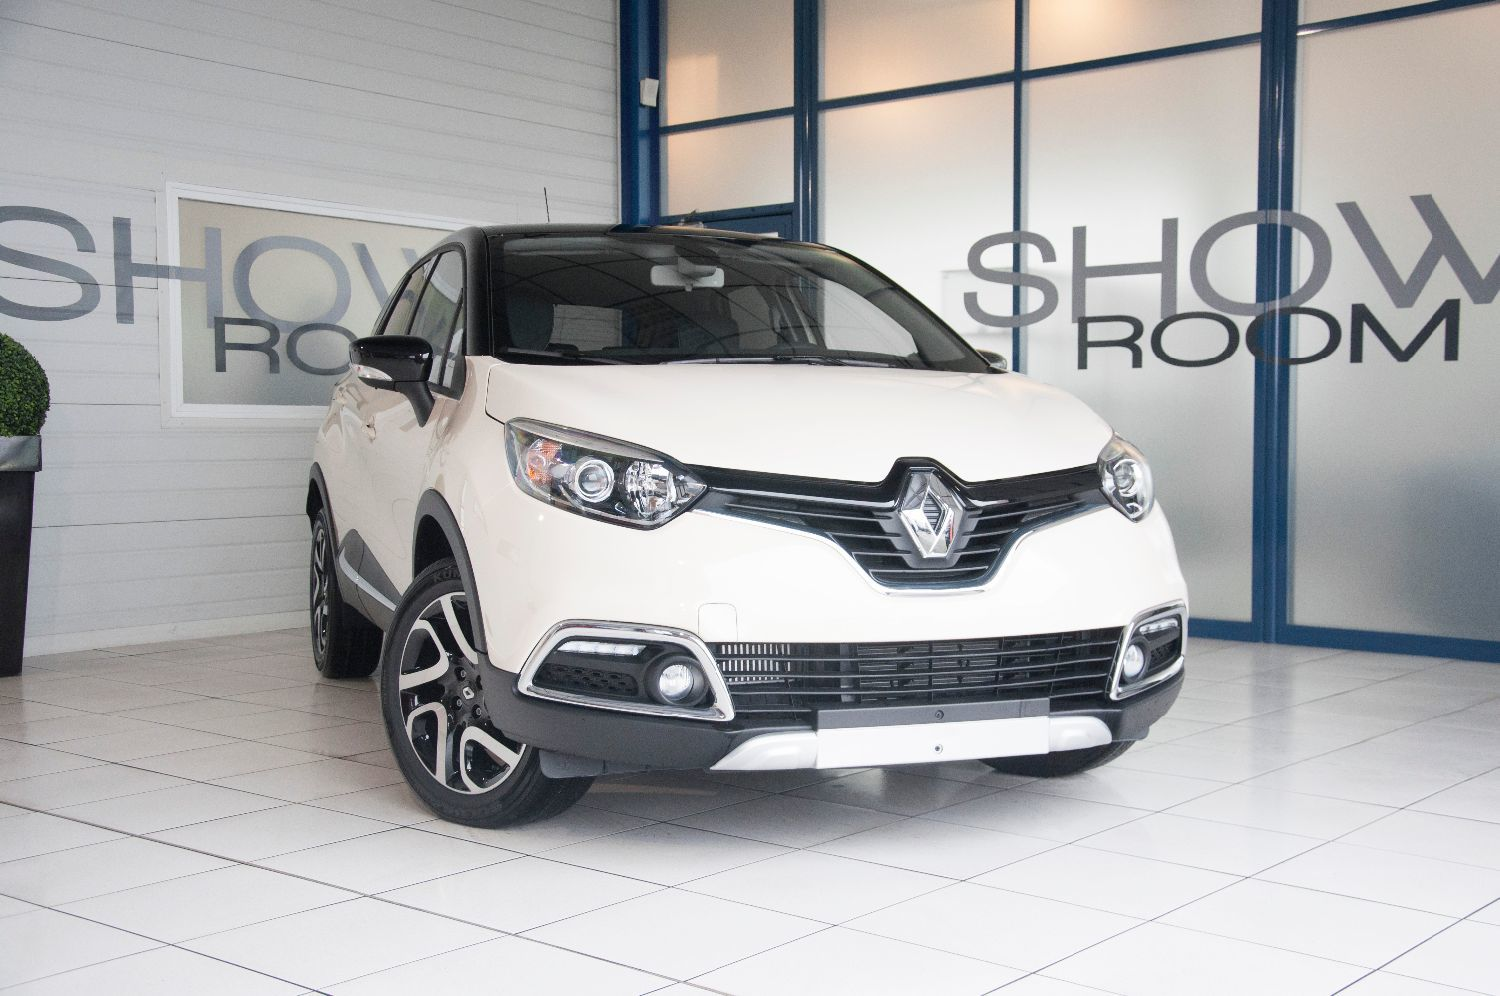 voiture renault captur 1 2 tce 120 ch intens energy edc occasion essence 2016 20 km. Black Bedroom Furniture Sets. Home Design Ideas